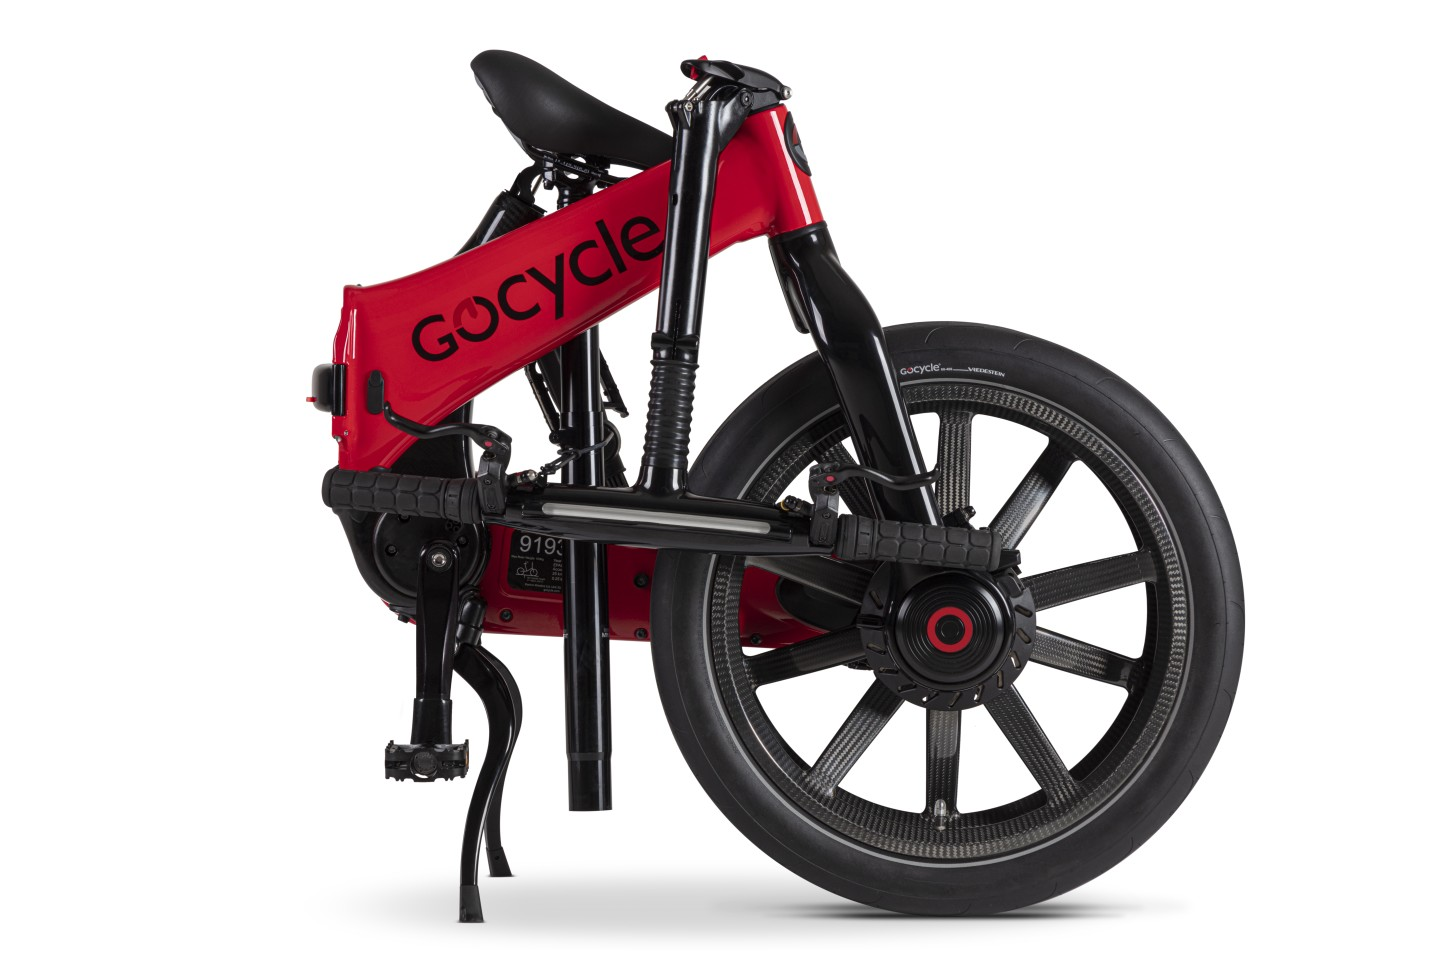 Depending on the model, the Gocycle G4 ebikes are available in color choices of white, gloss black, matte black, red, gray or blue